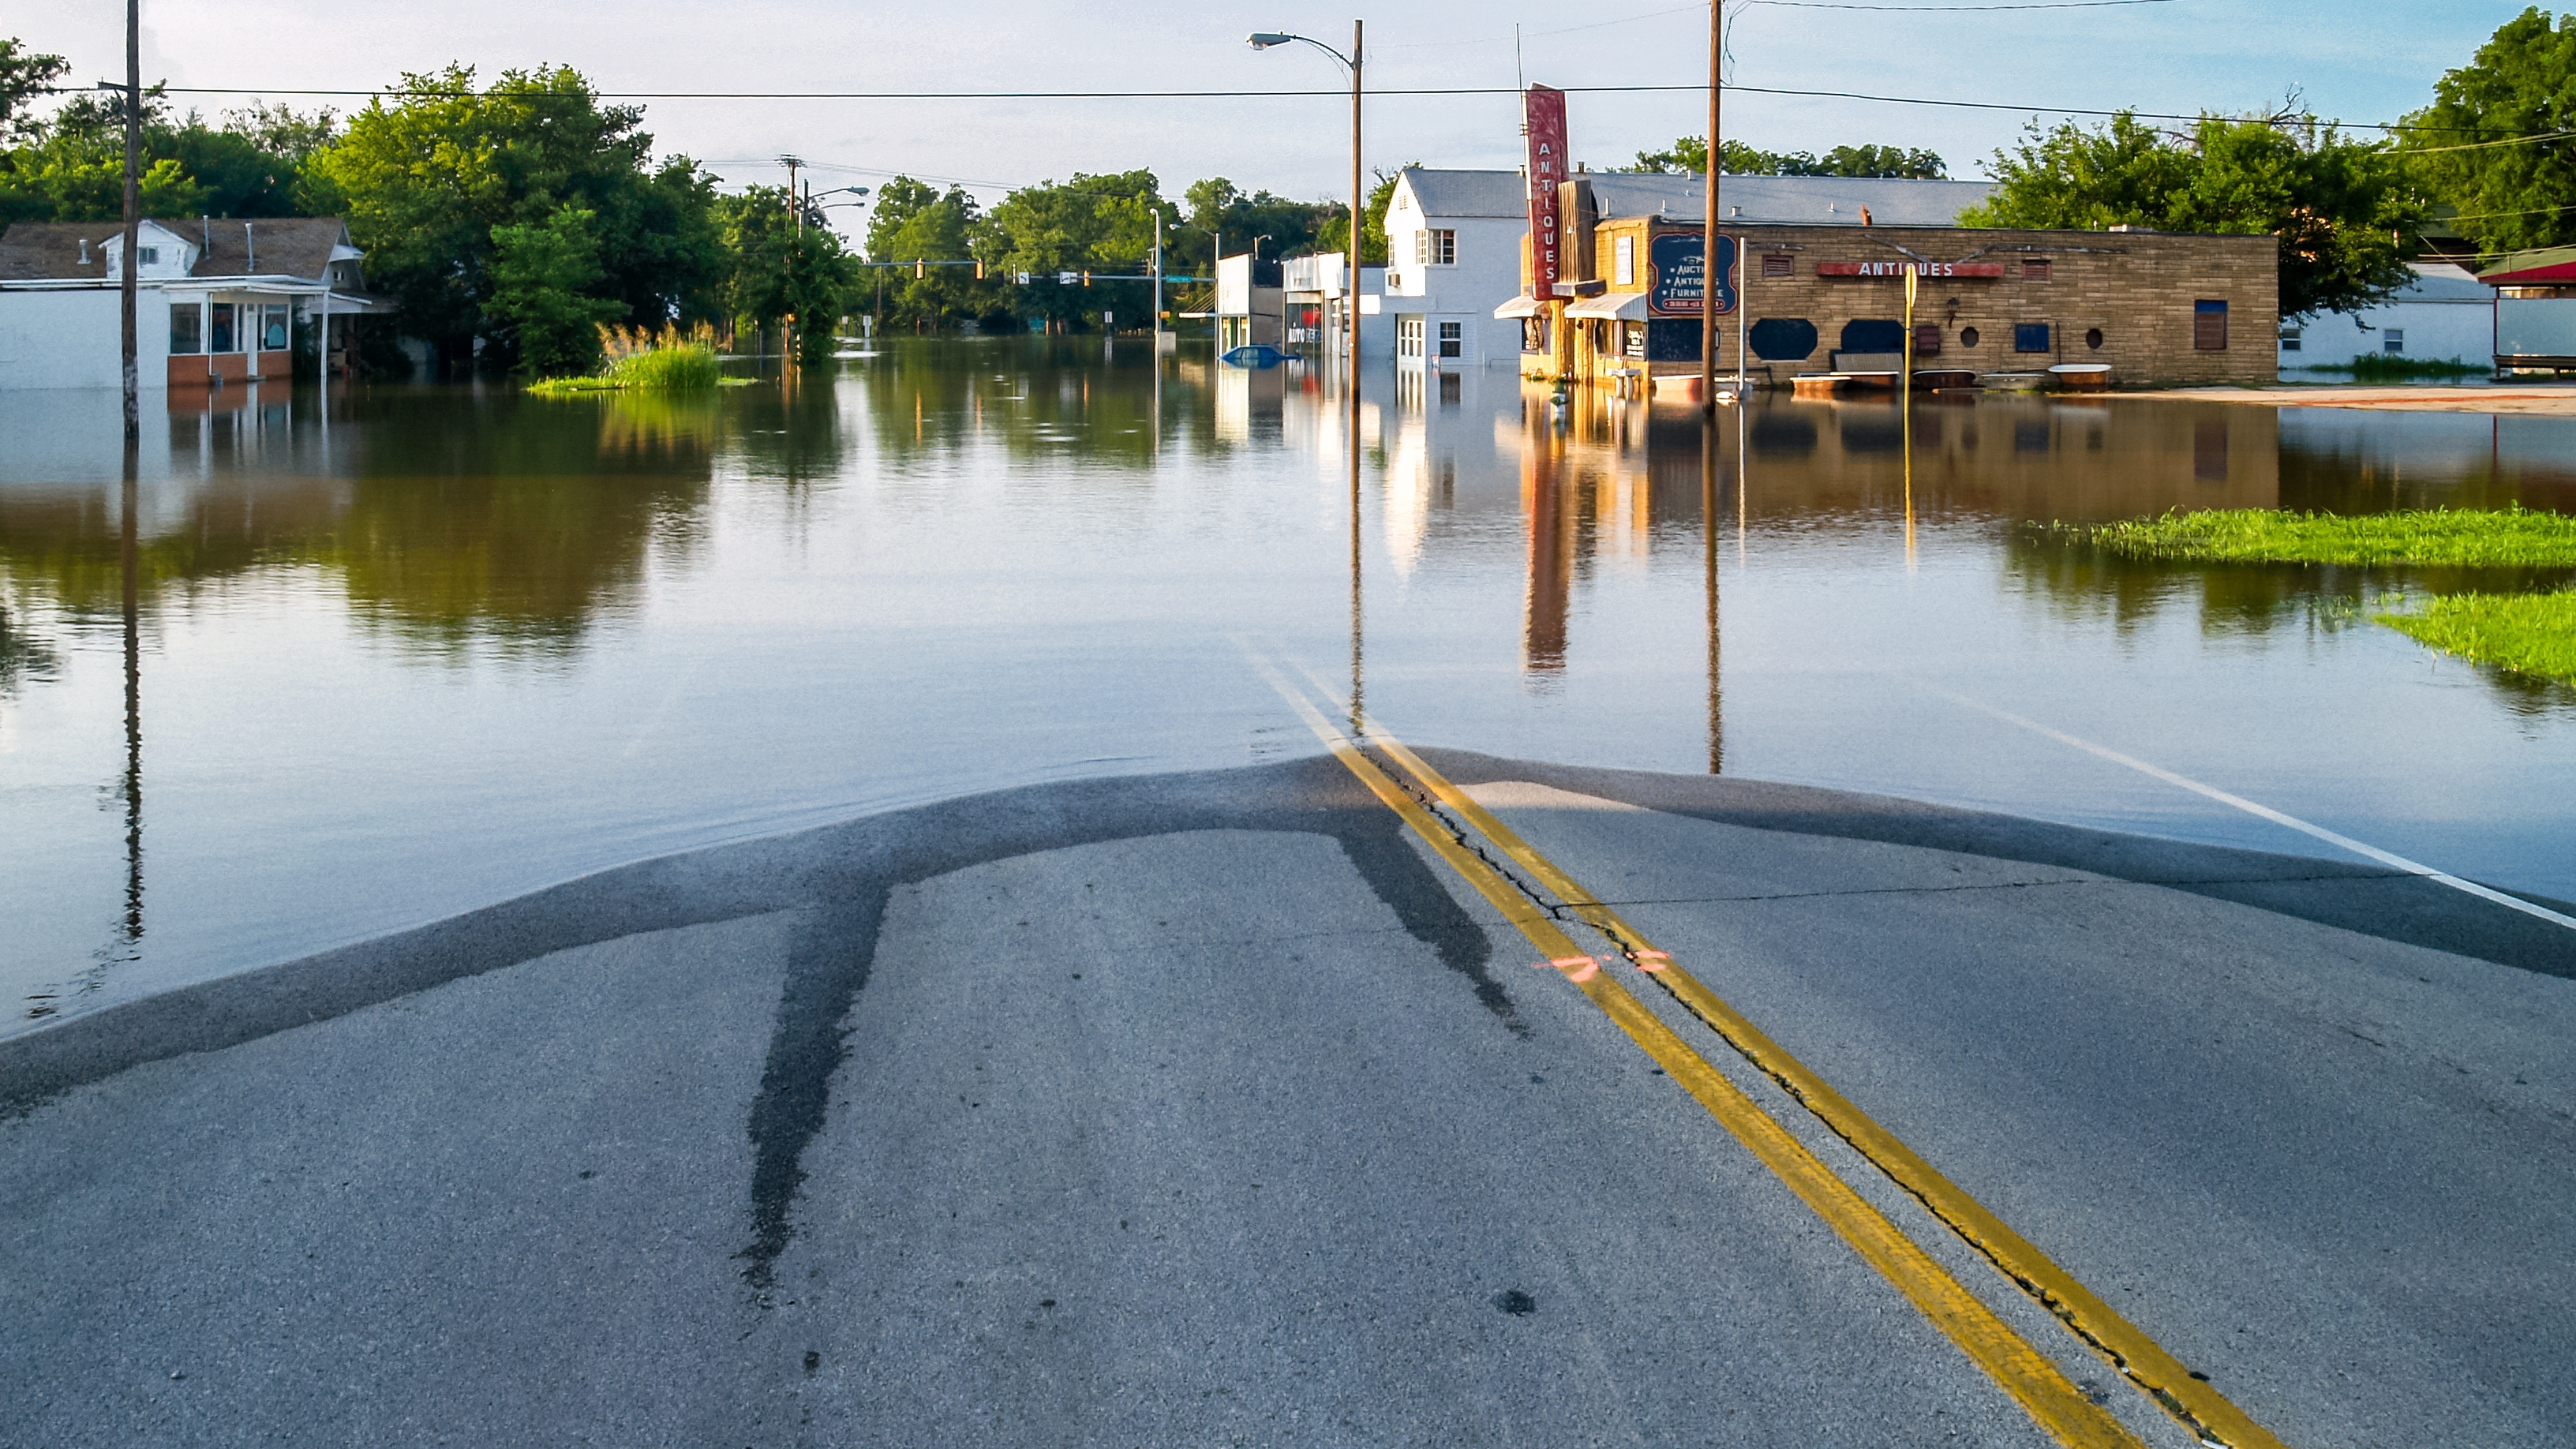 Flooded business street in a small town